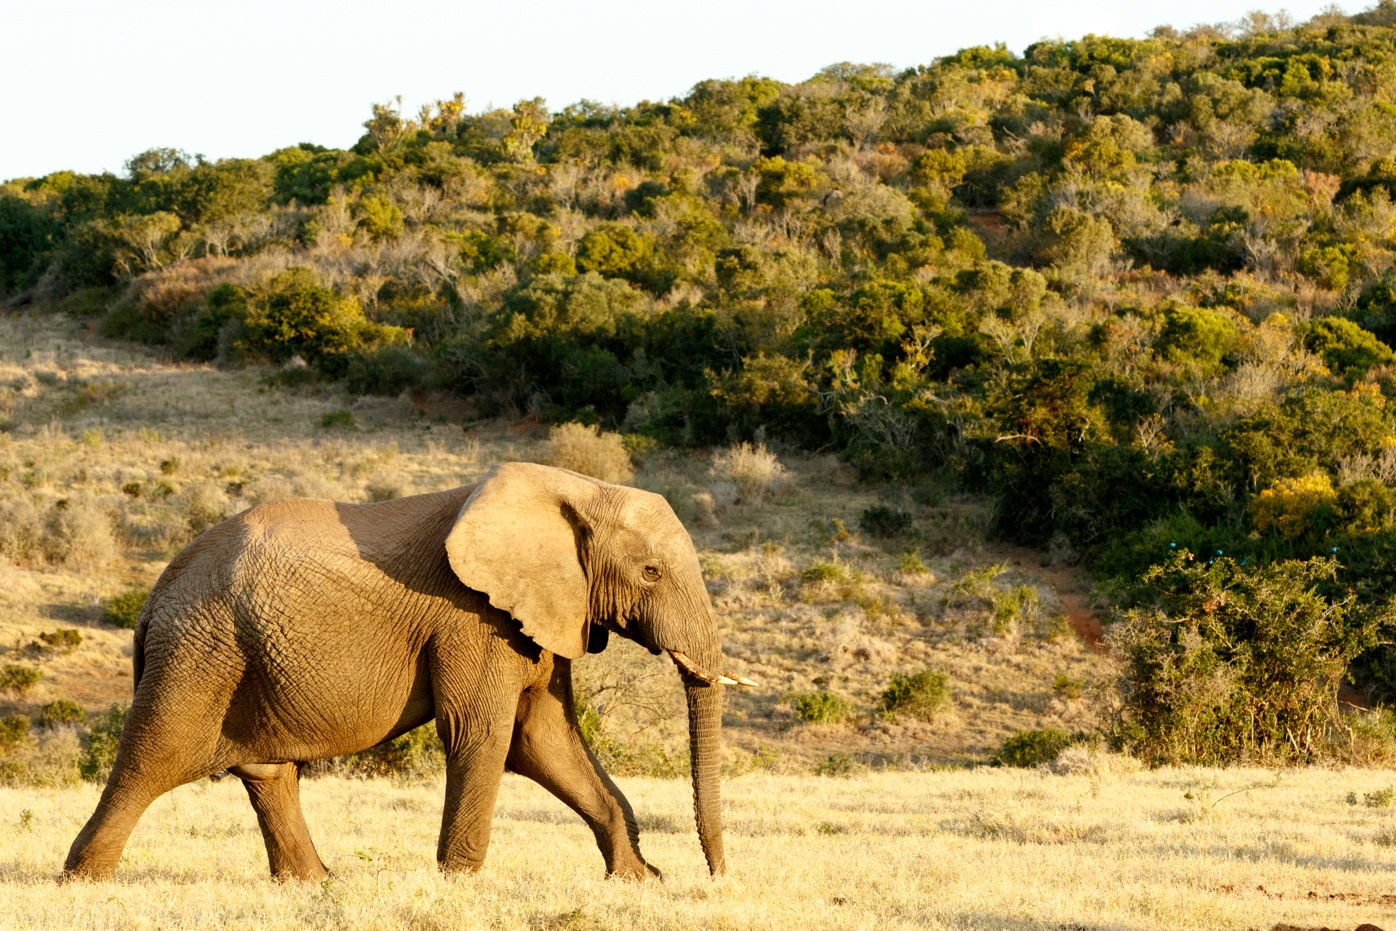 African Bush Elephant on the way to the water. by Mark de Scande